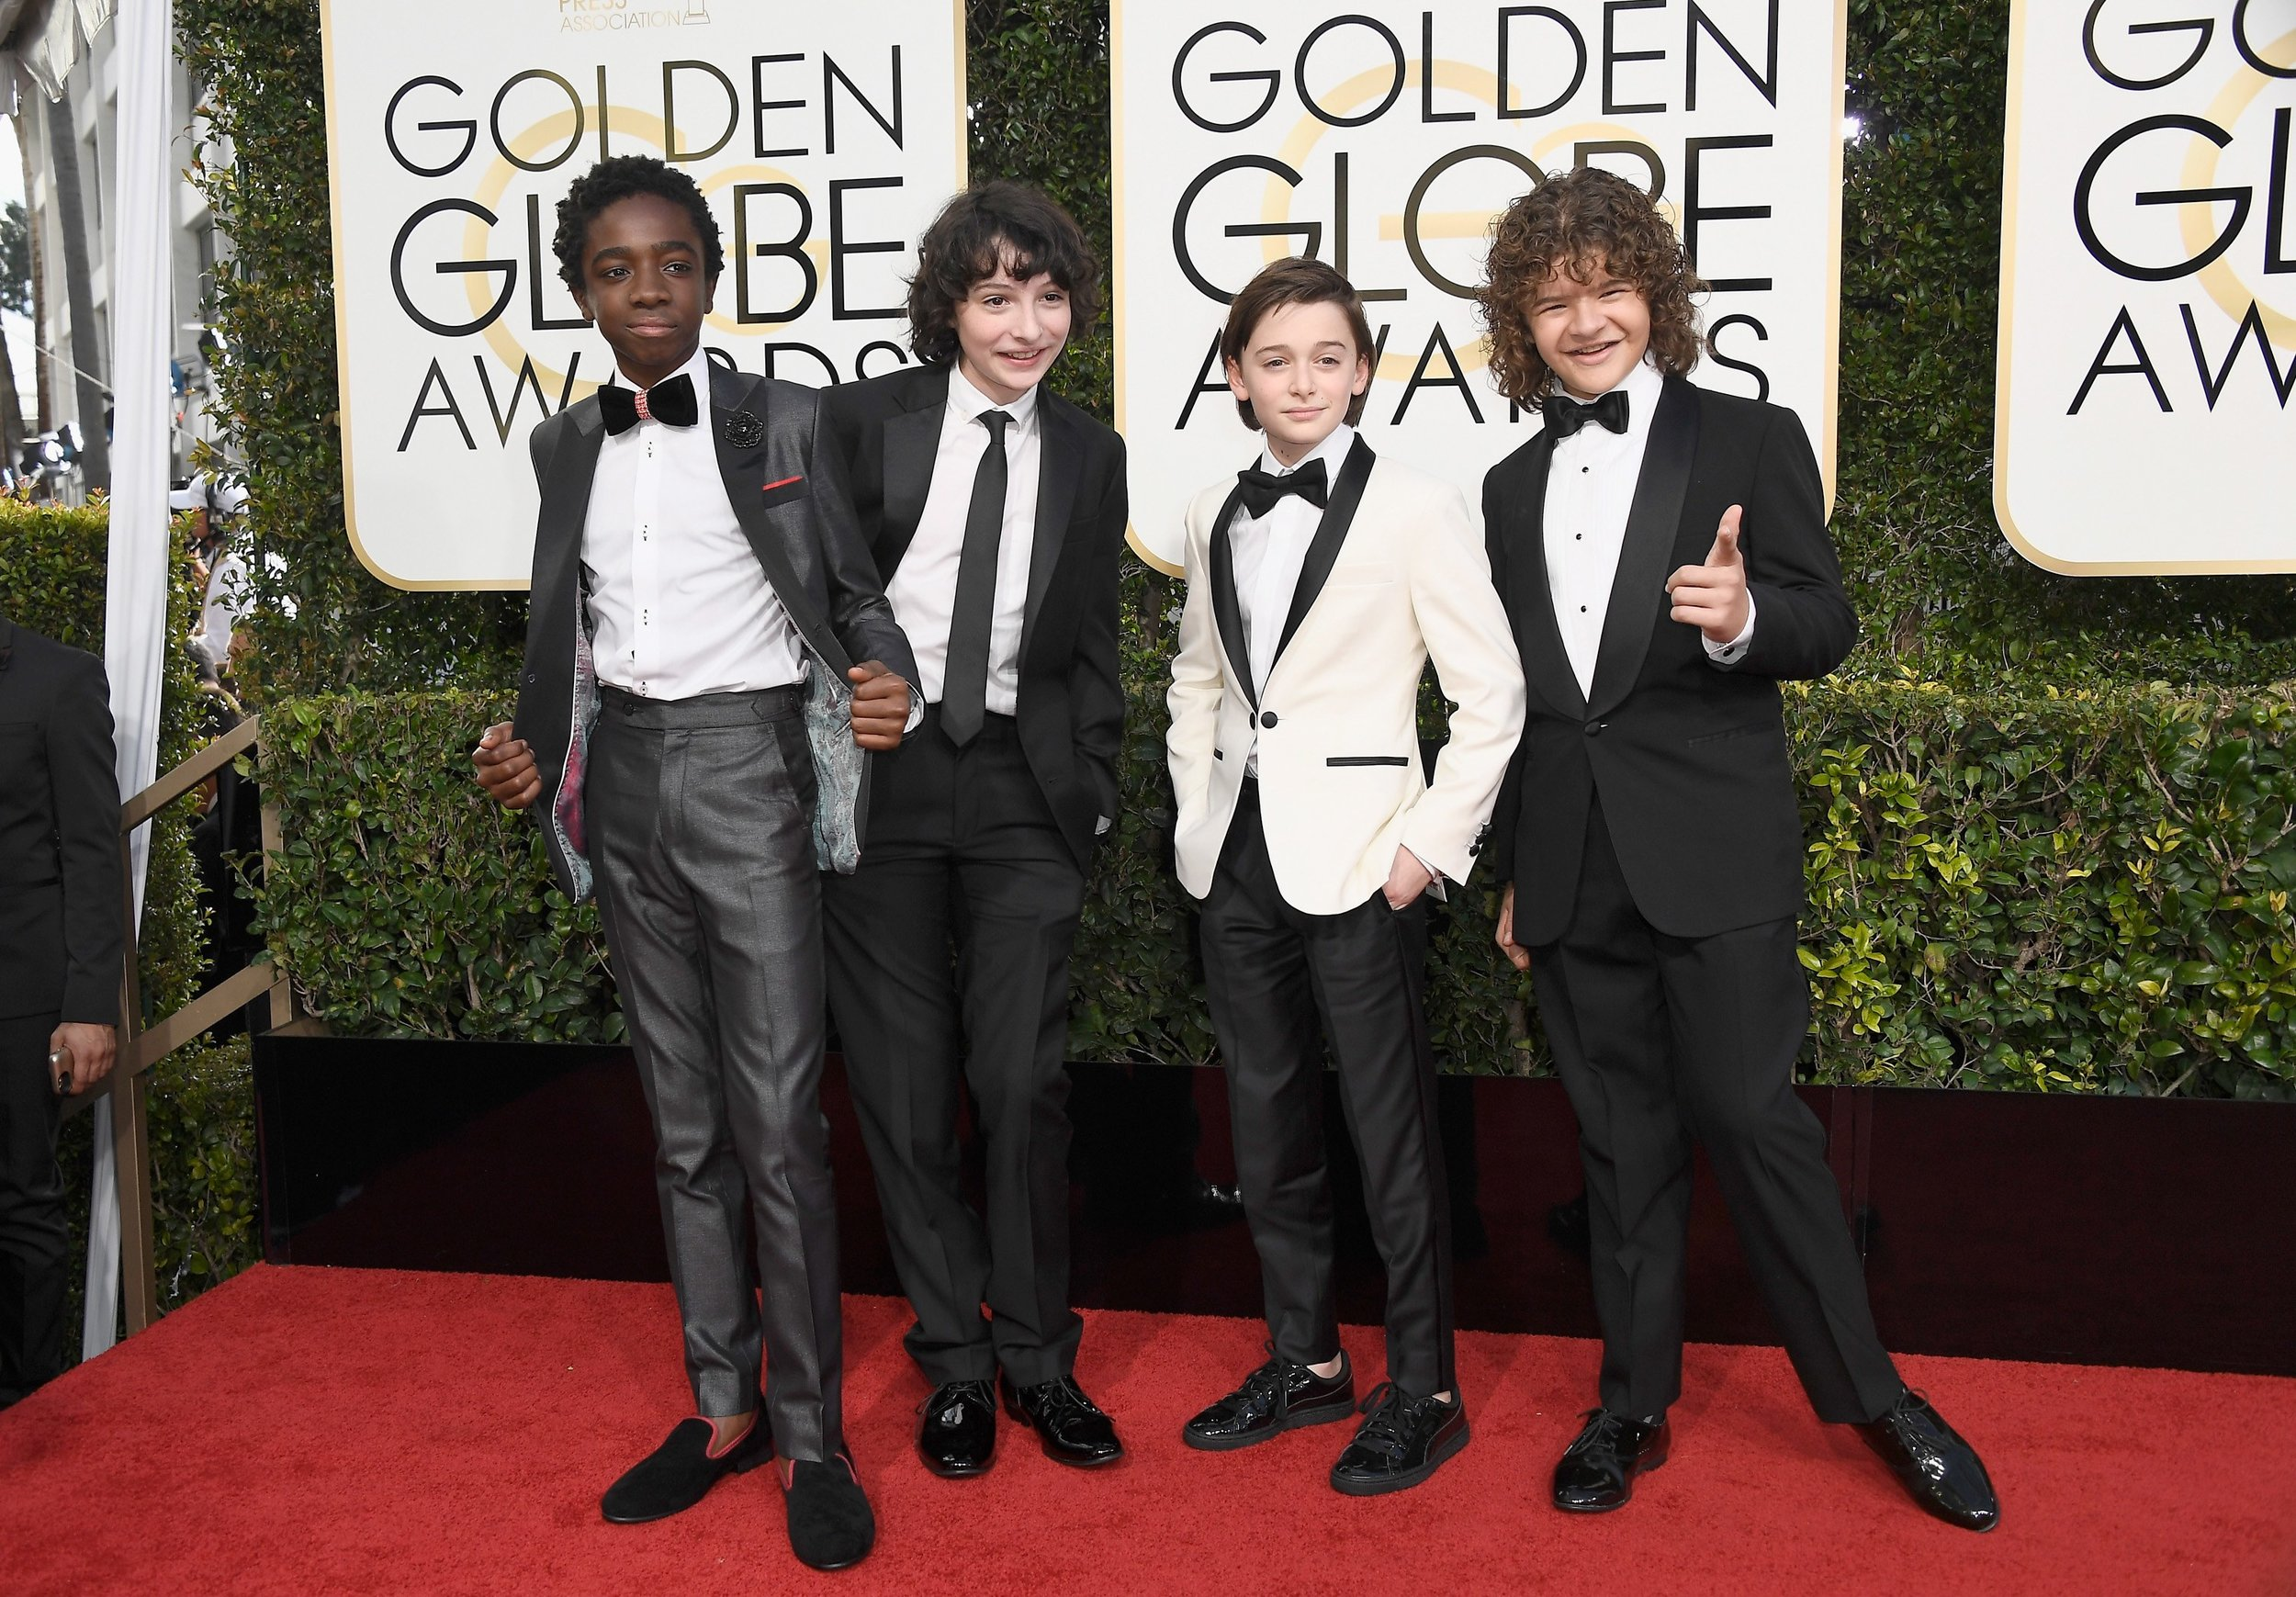 2017 Golden Globes Red Carpet with E! Entertainment